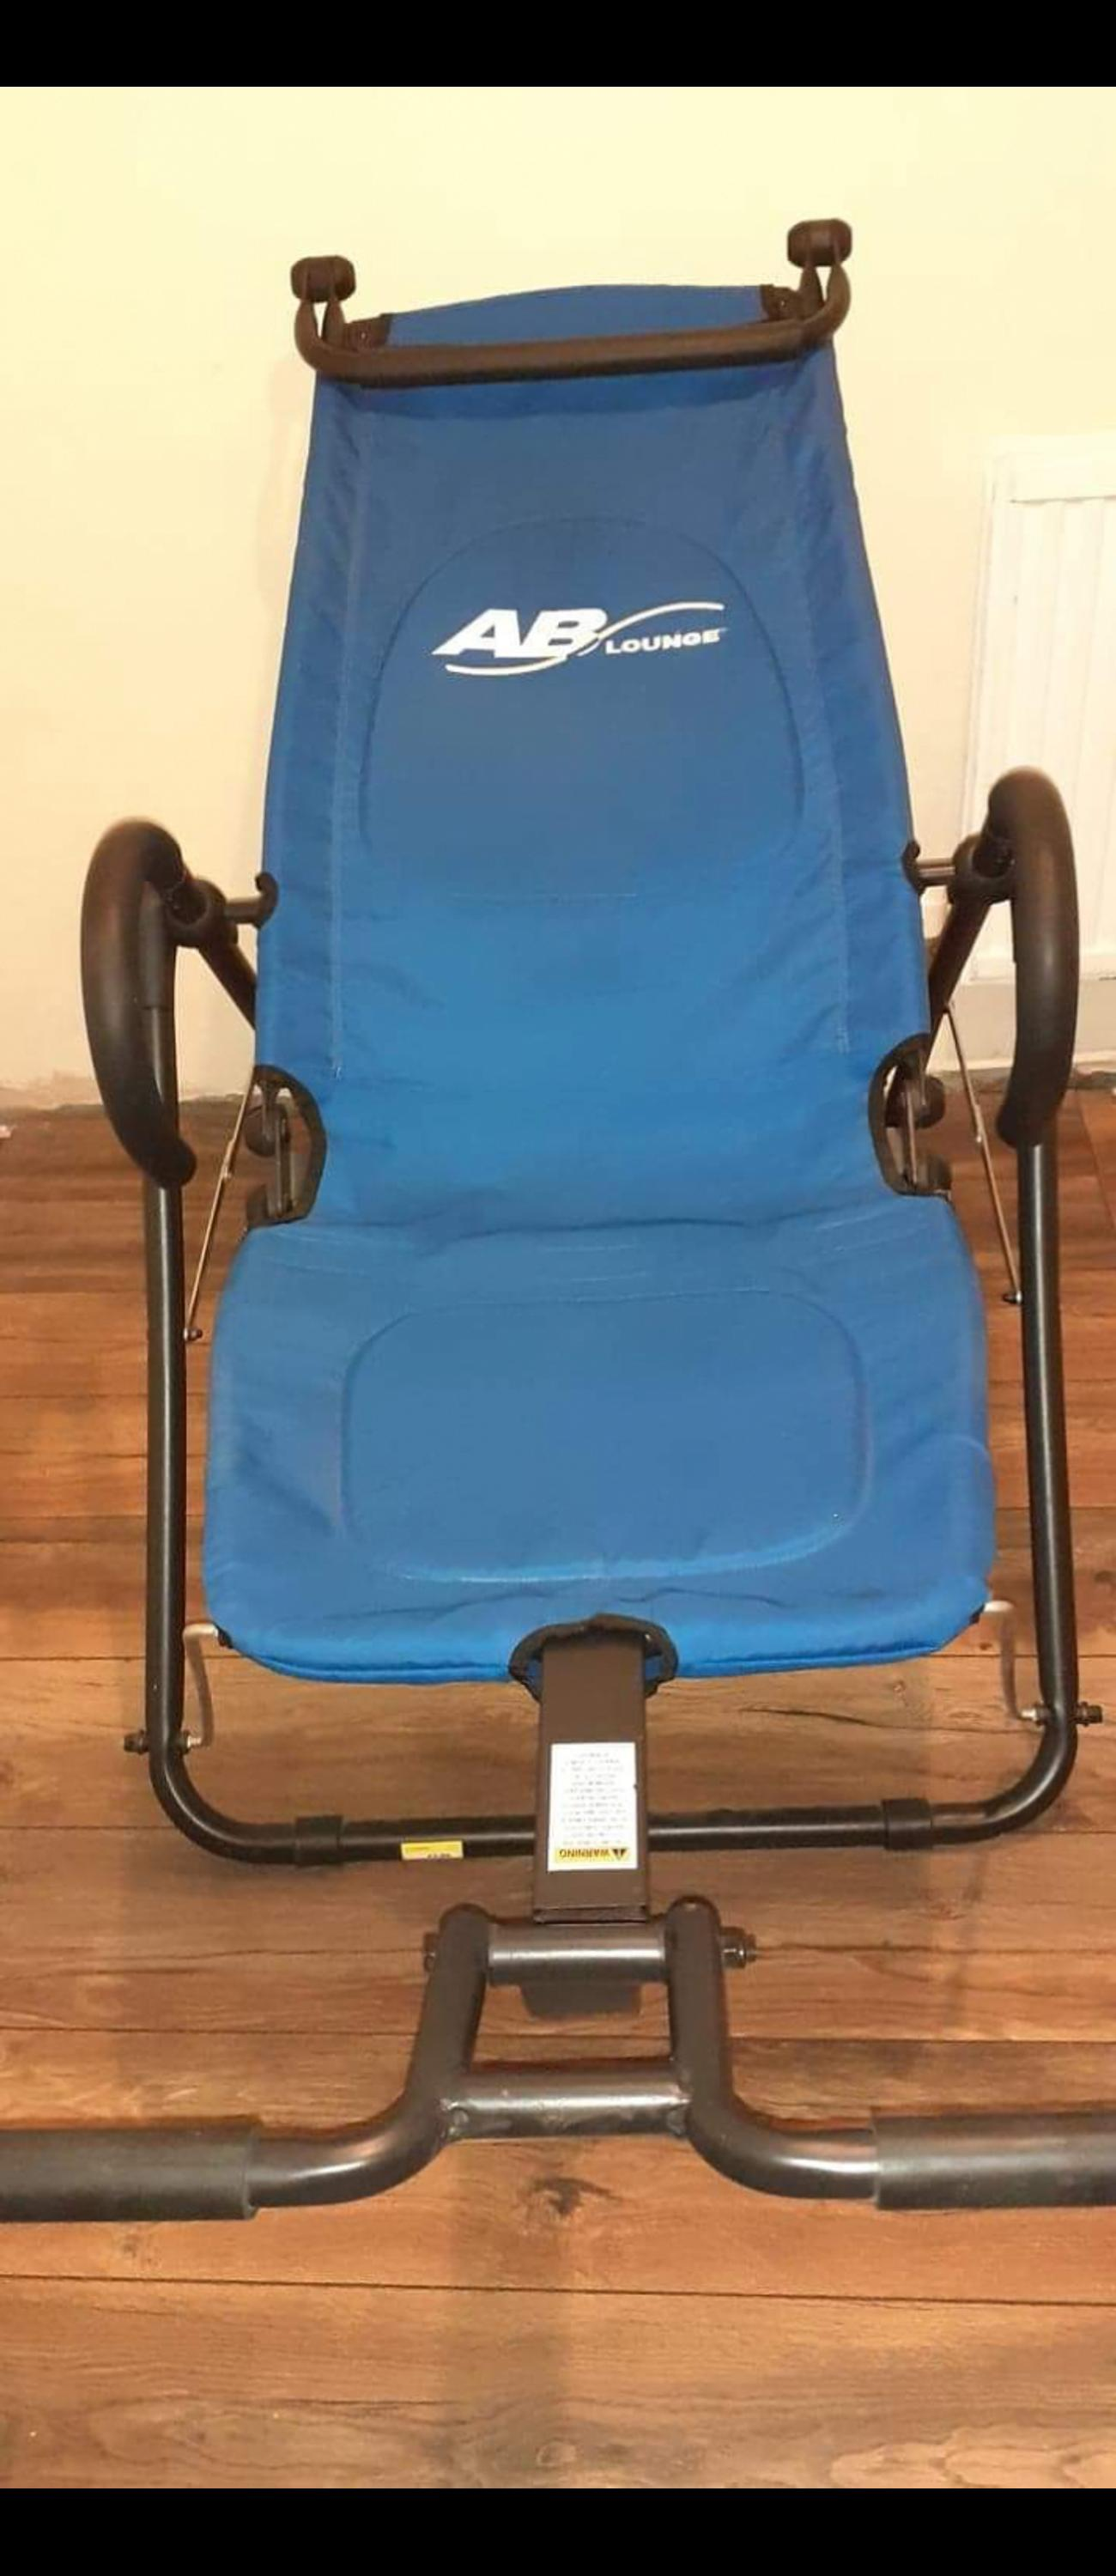 Ab lounger - folds up for storage (great condition) Ab roller and dumbbell. WN5 open to offers on all not free, can deliver for extra fuel. (Will make arrangements so we are apart and no one at risk)